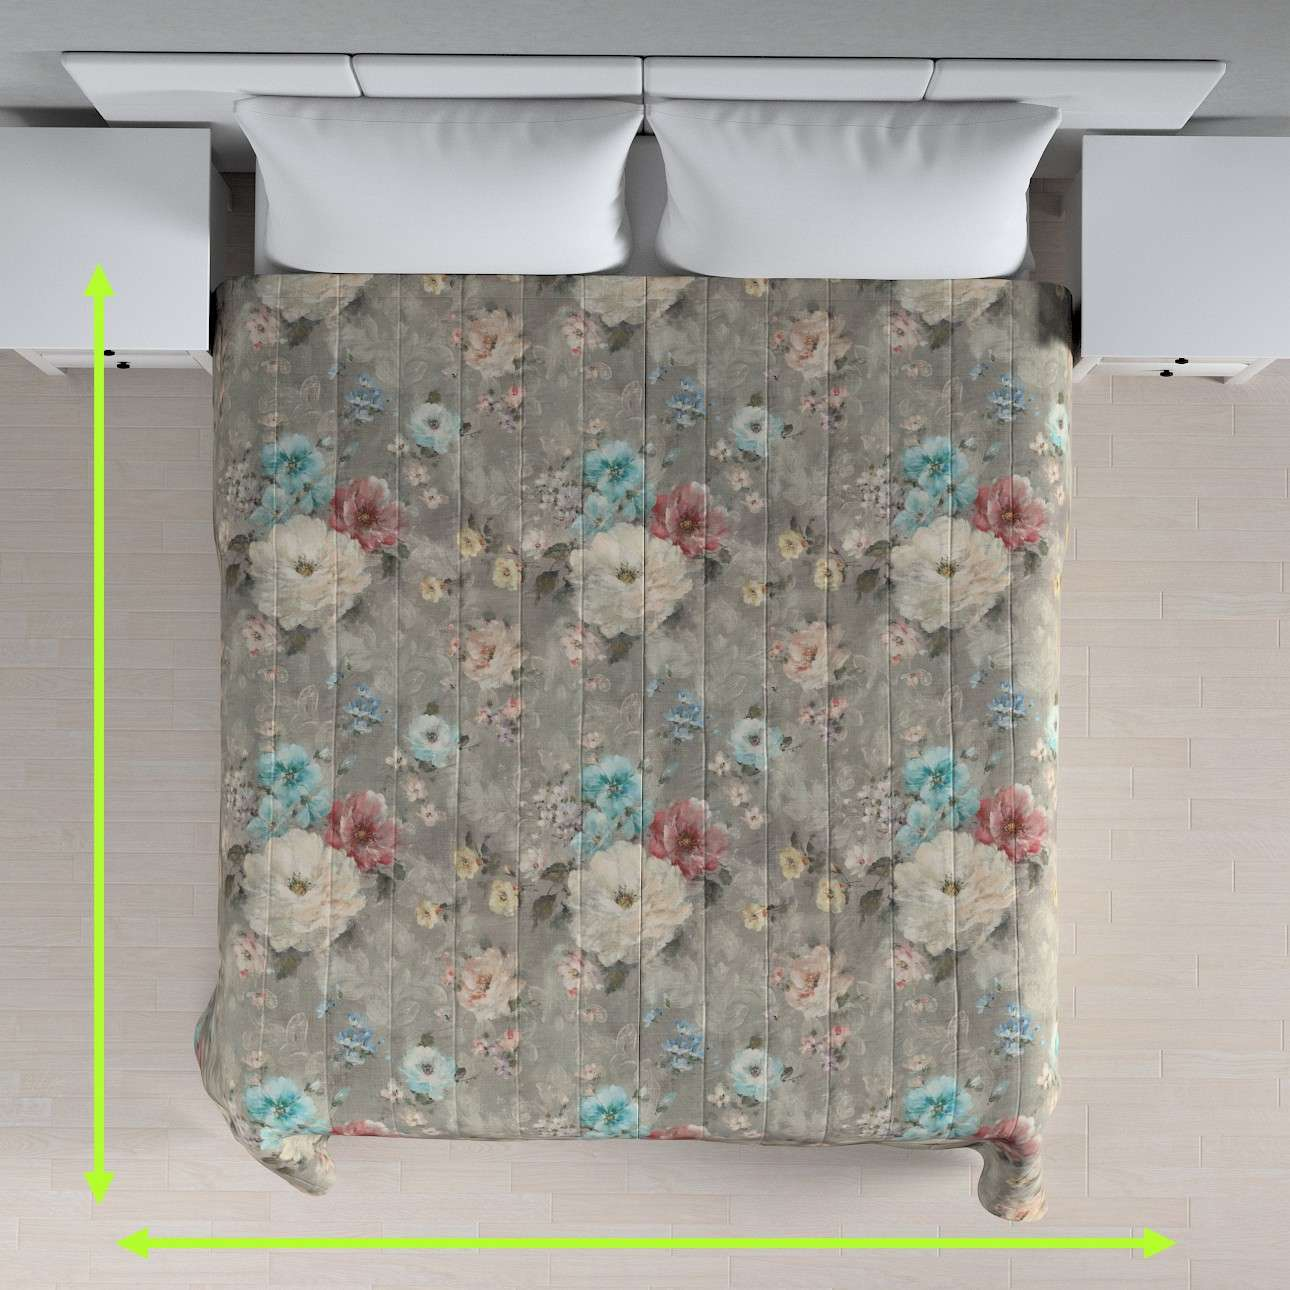 Quilted throw (vertical quilt pattern) in collection Monet, fabric: 137-81